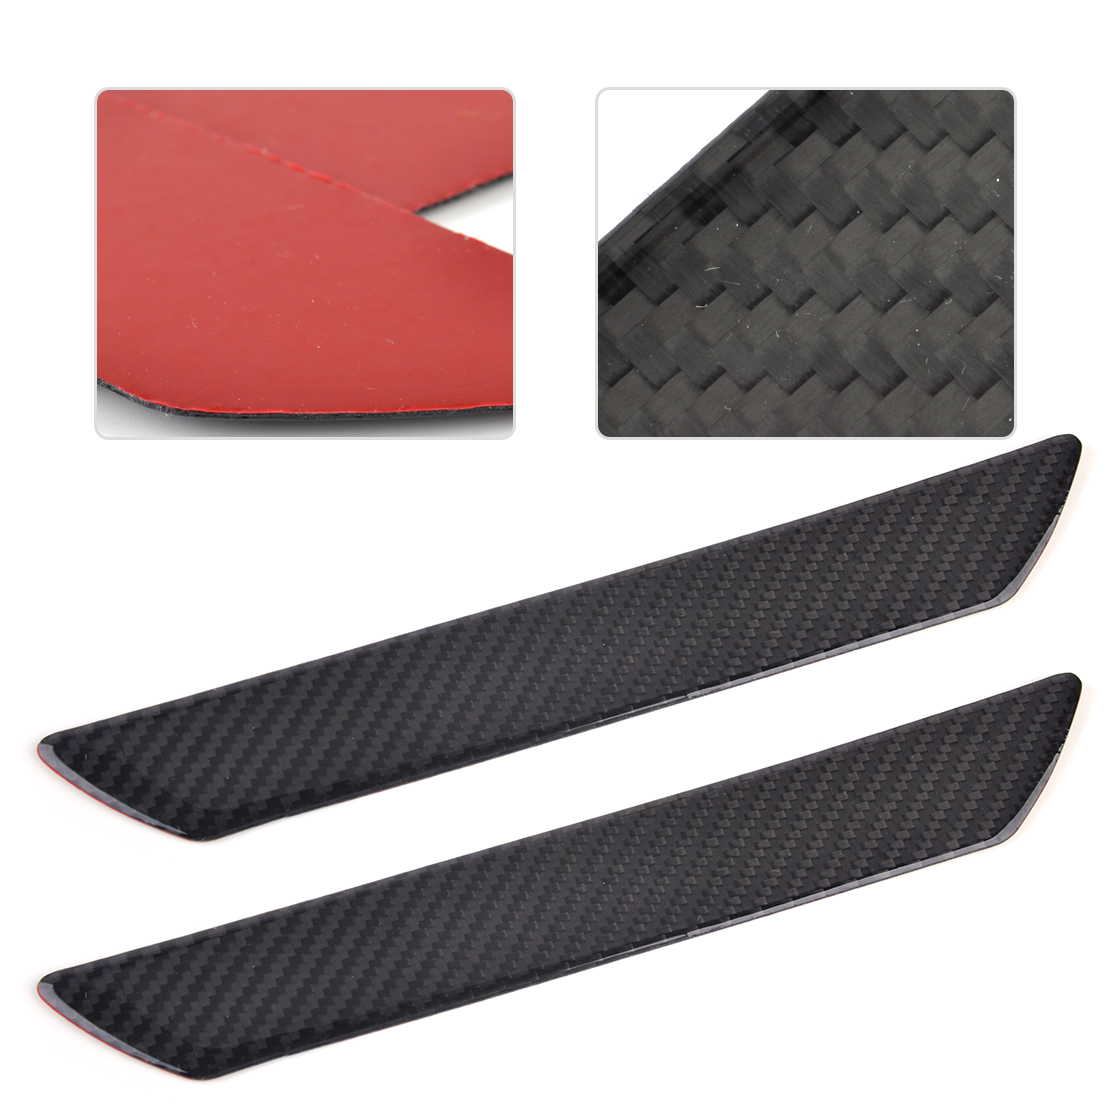 beler 2Pcs Real Carbon Fiber Car Door Step Scuff Plate Sill Cover Panel Protect Trim Guard for VW Audi Ford Honda BMW Chevrolet carbon fiber vnyl door sill scuff plate welcome pedal threshold protect stickers for mazda cx 5 cx5 2014 2015 8pcs car styling